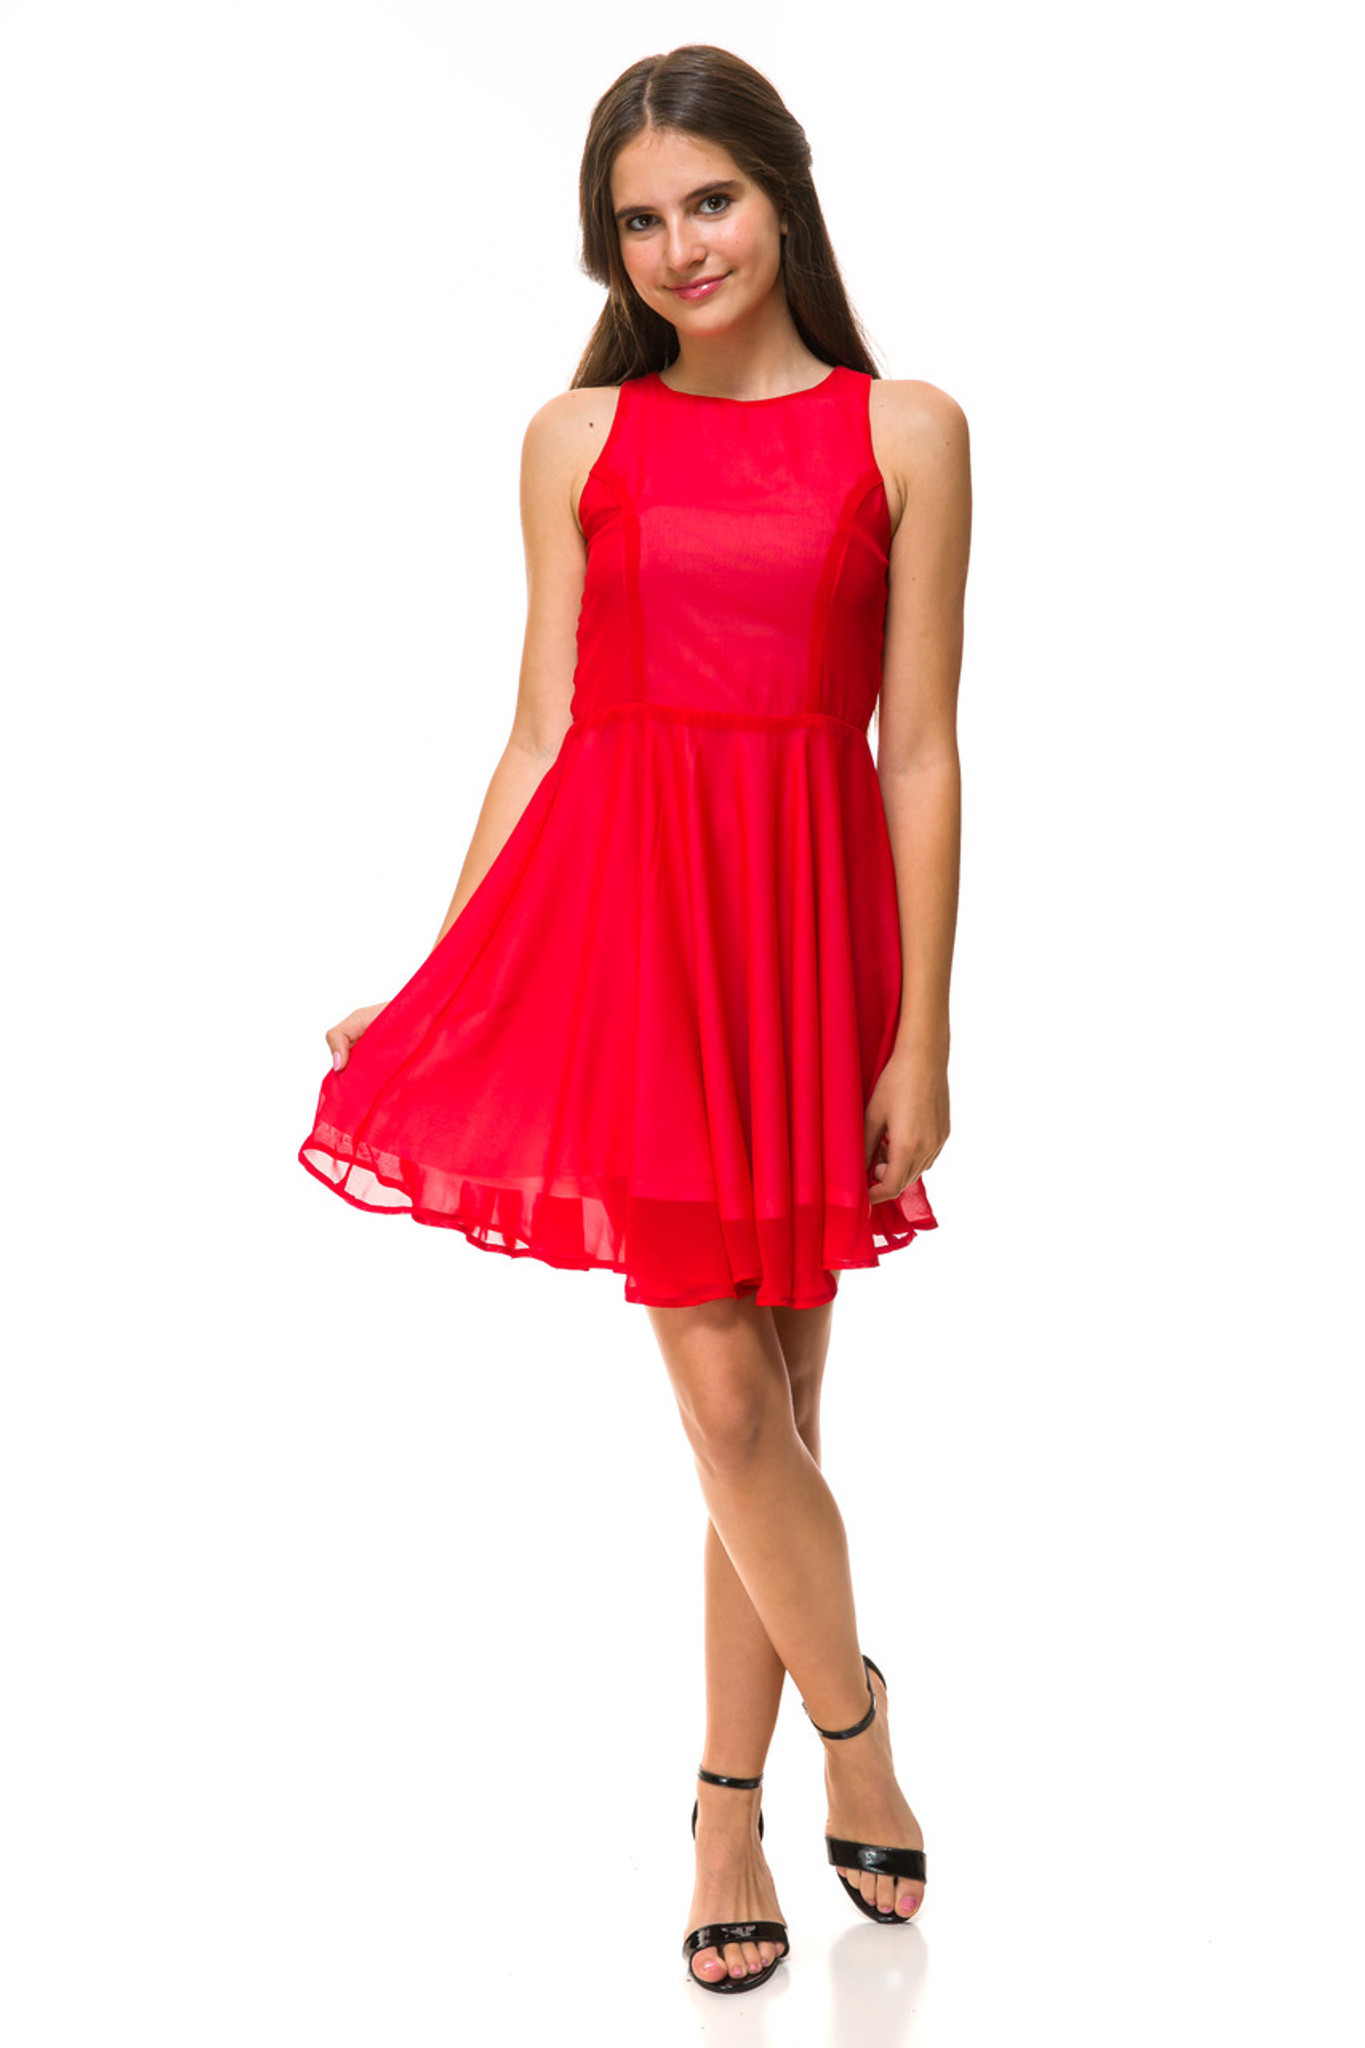 Red Chiffon Tank Dress in Longer Length